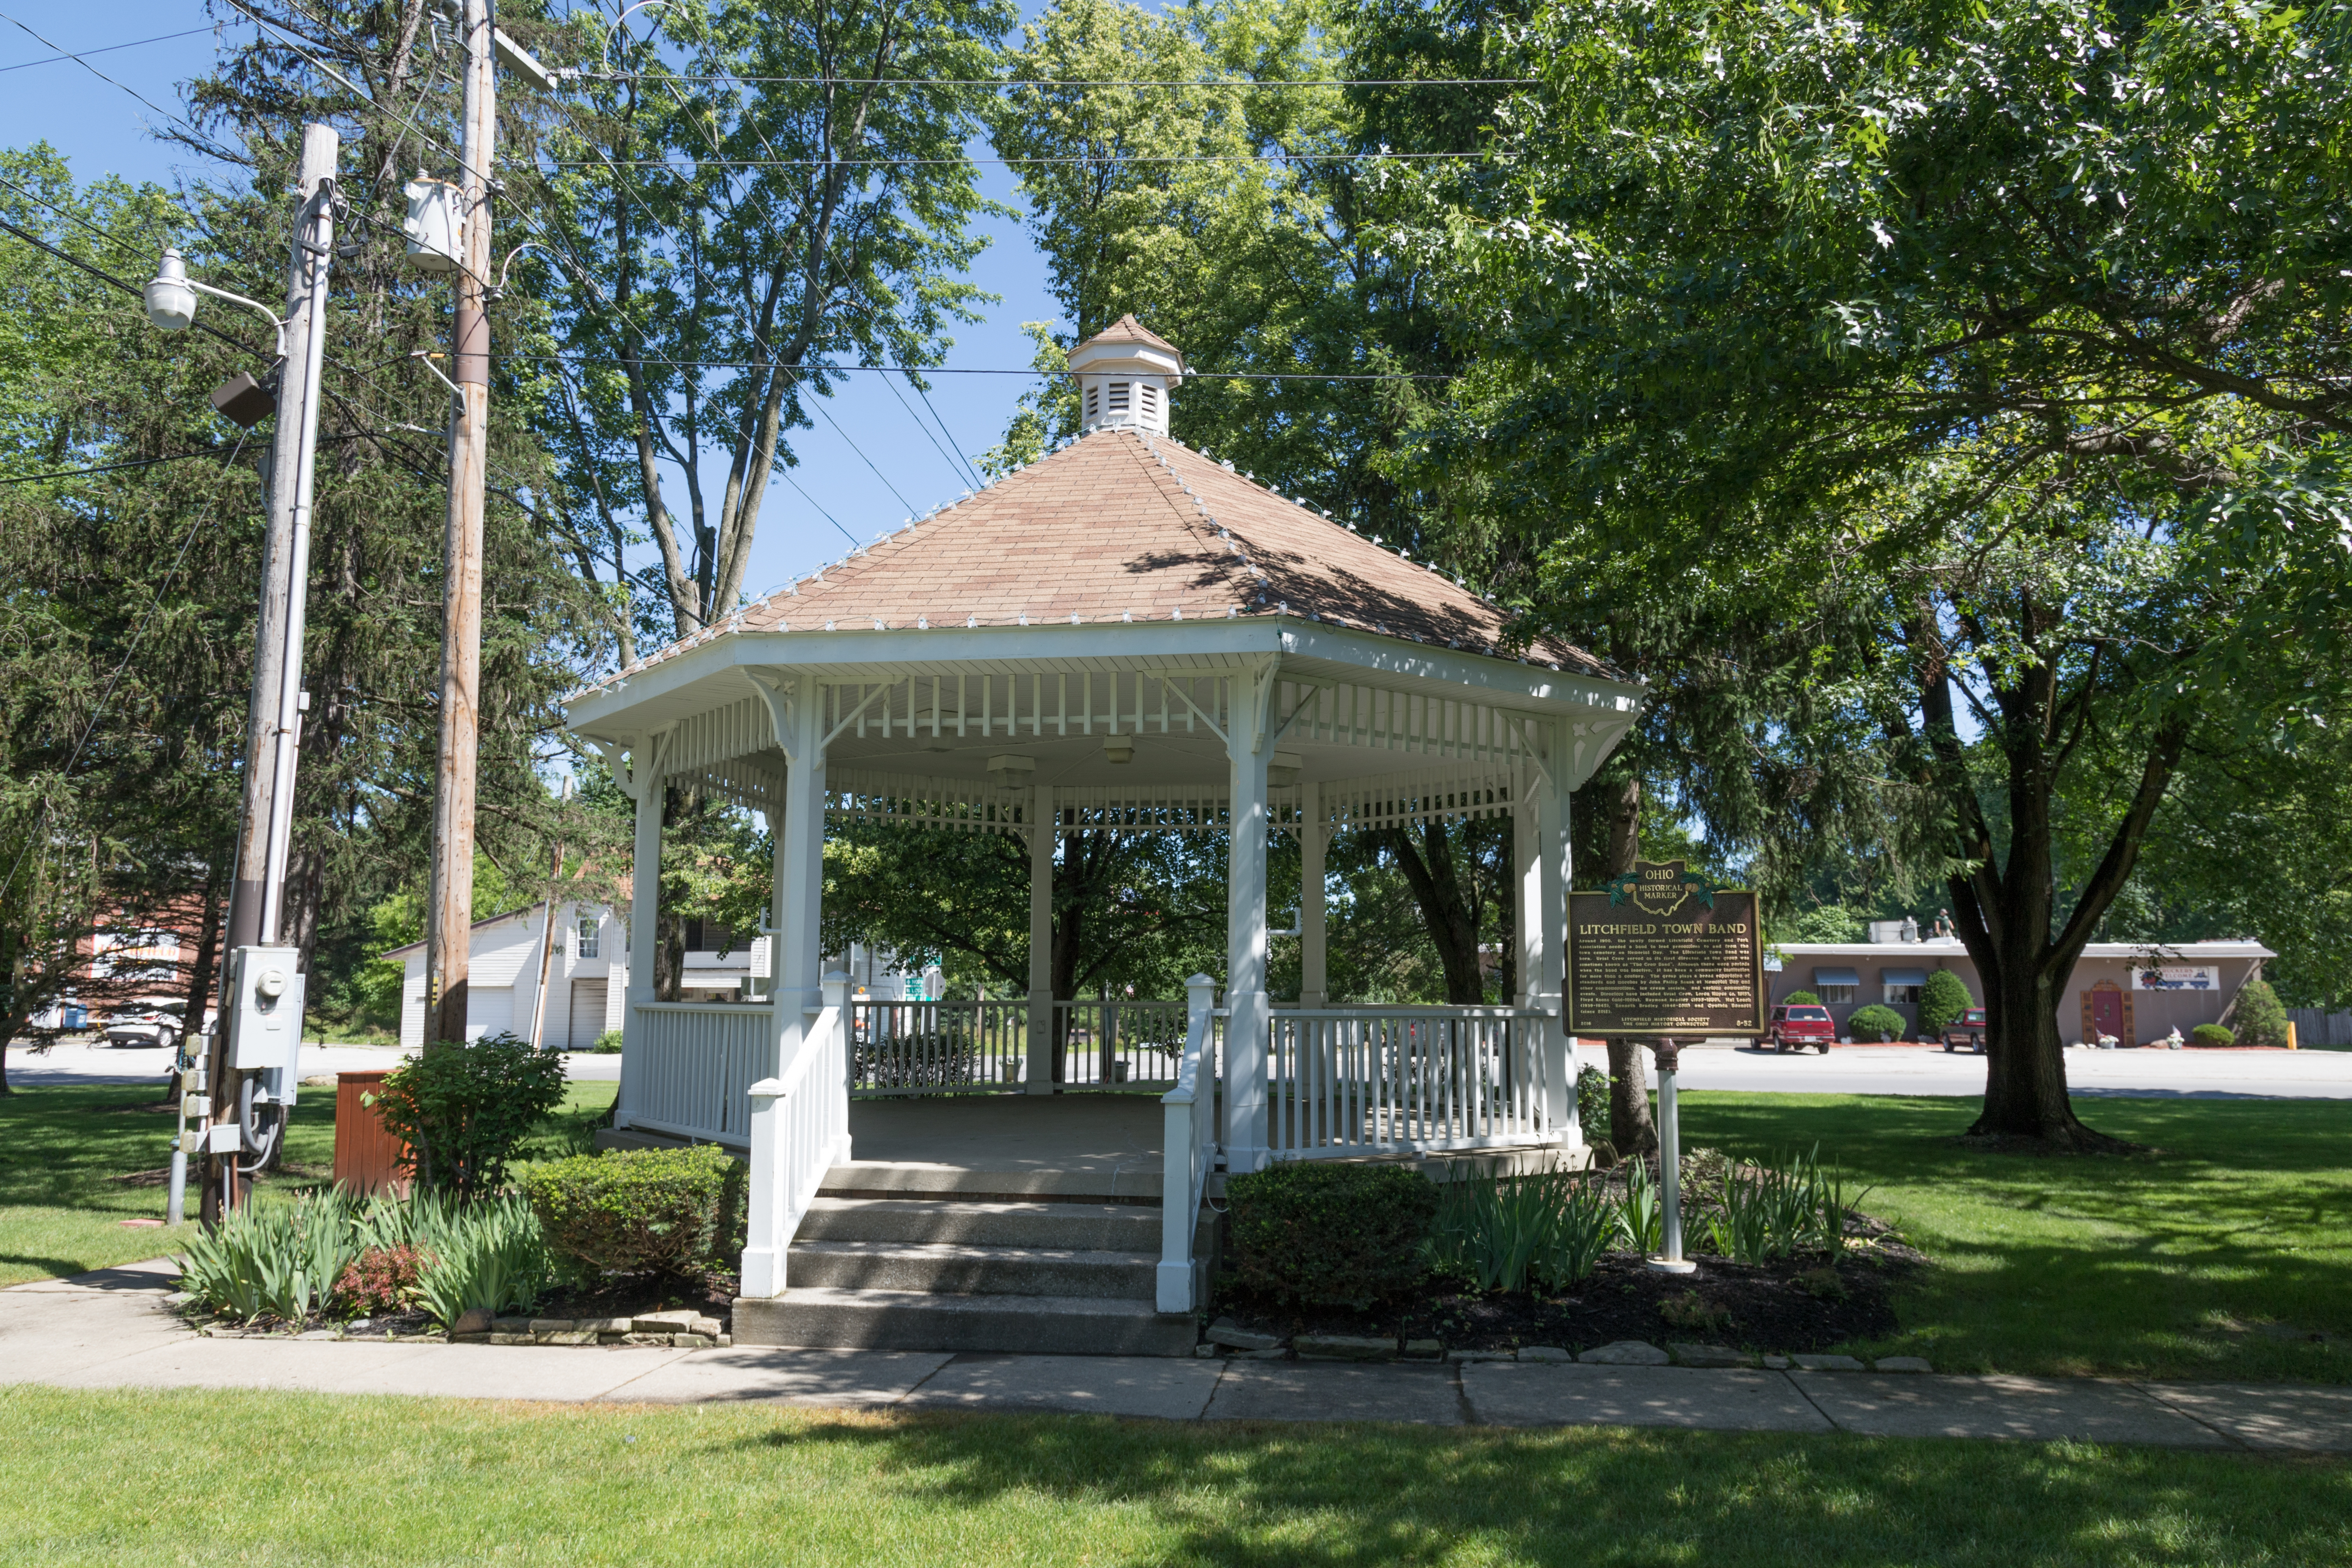 Litchfield Town Band Marker and Bandstand